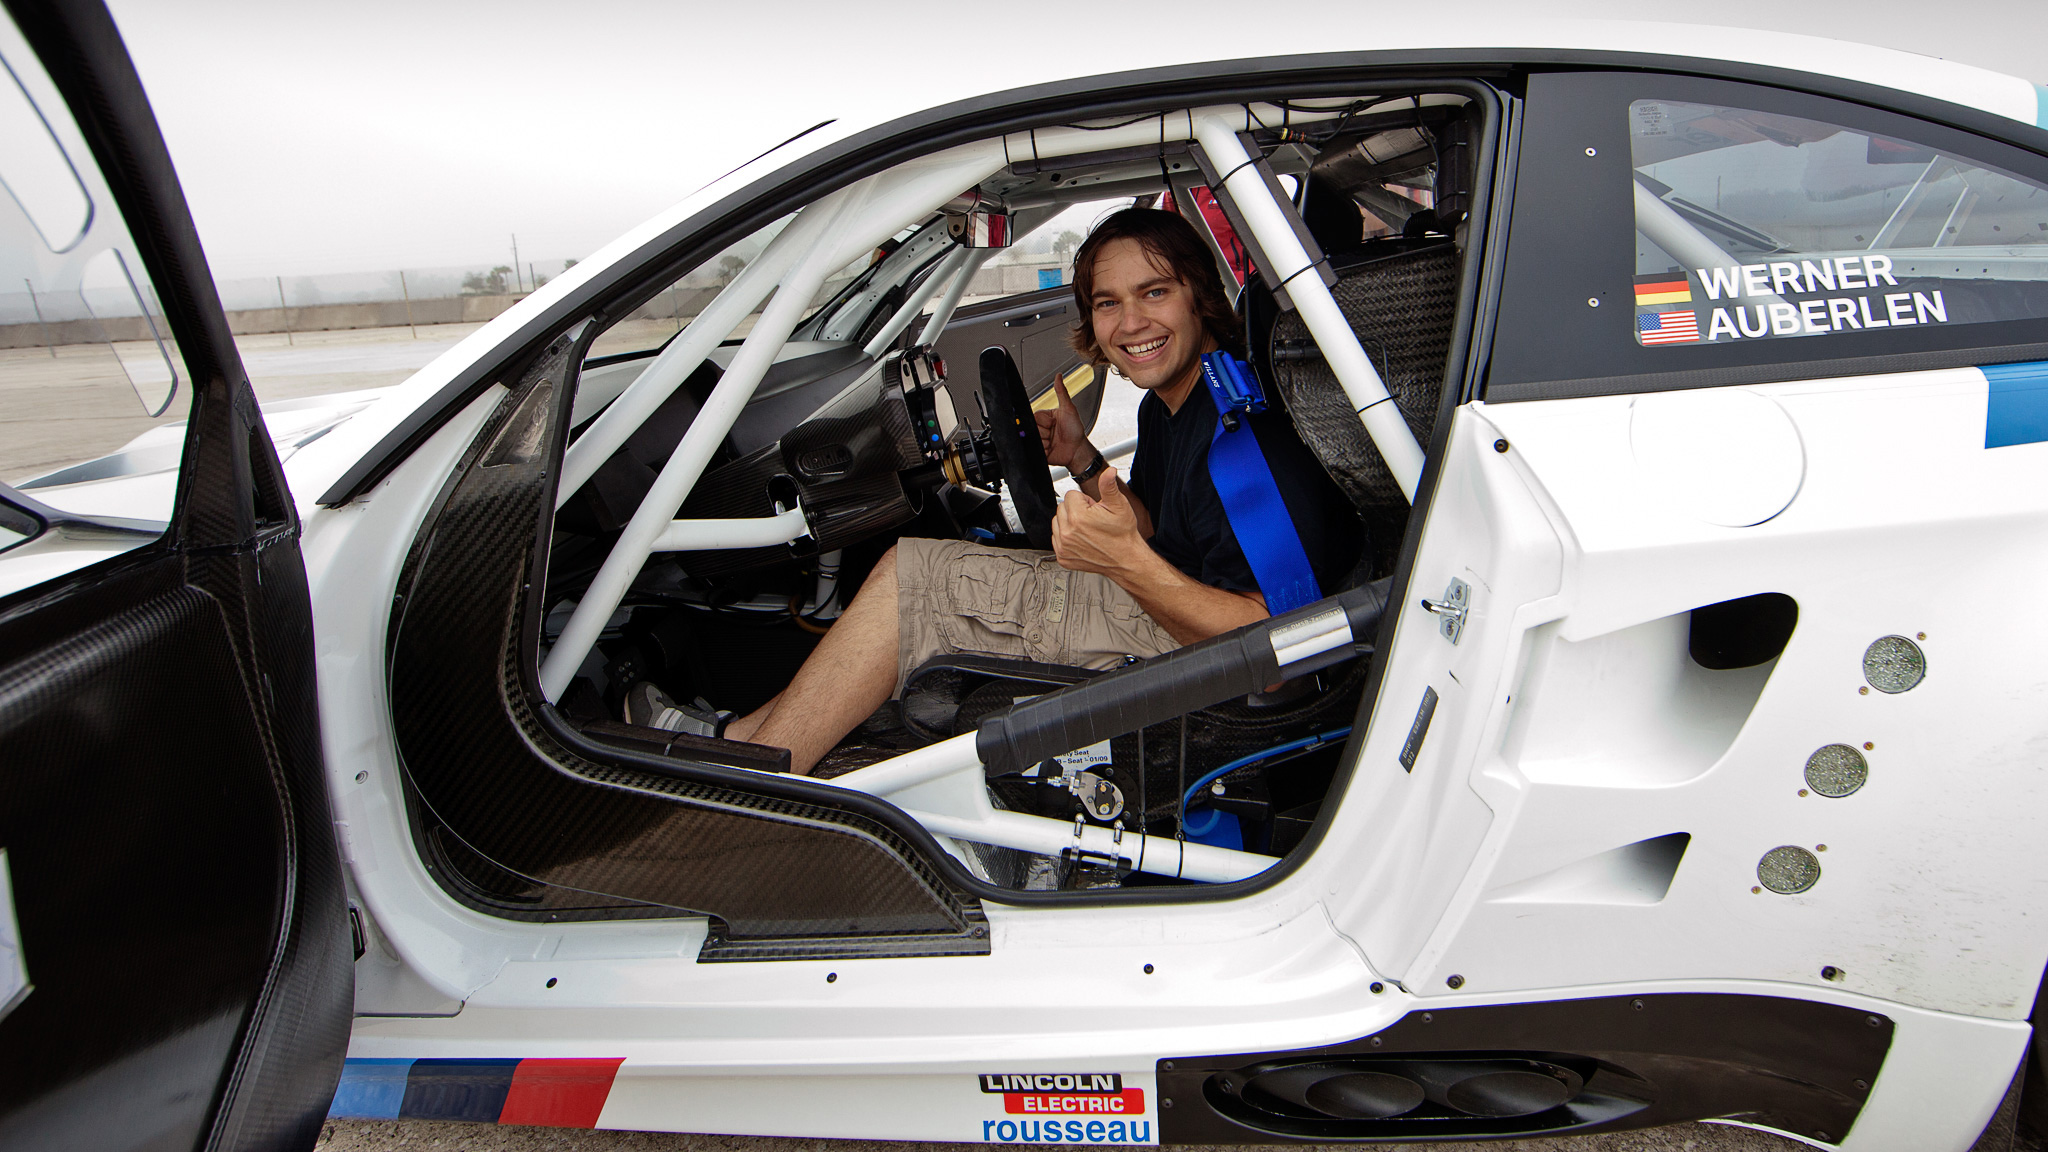 Chris Tedesco inside the BMW M3 GT race car, which won back-to-back American Le Mans GT Manufacturer and Team titles in 2010 and 2011. Unfortunately, he says, they wouldn't let me drive it.